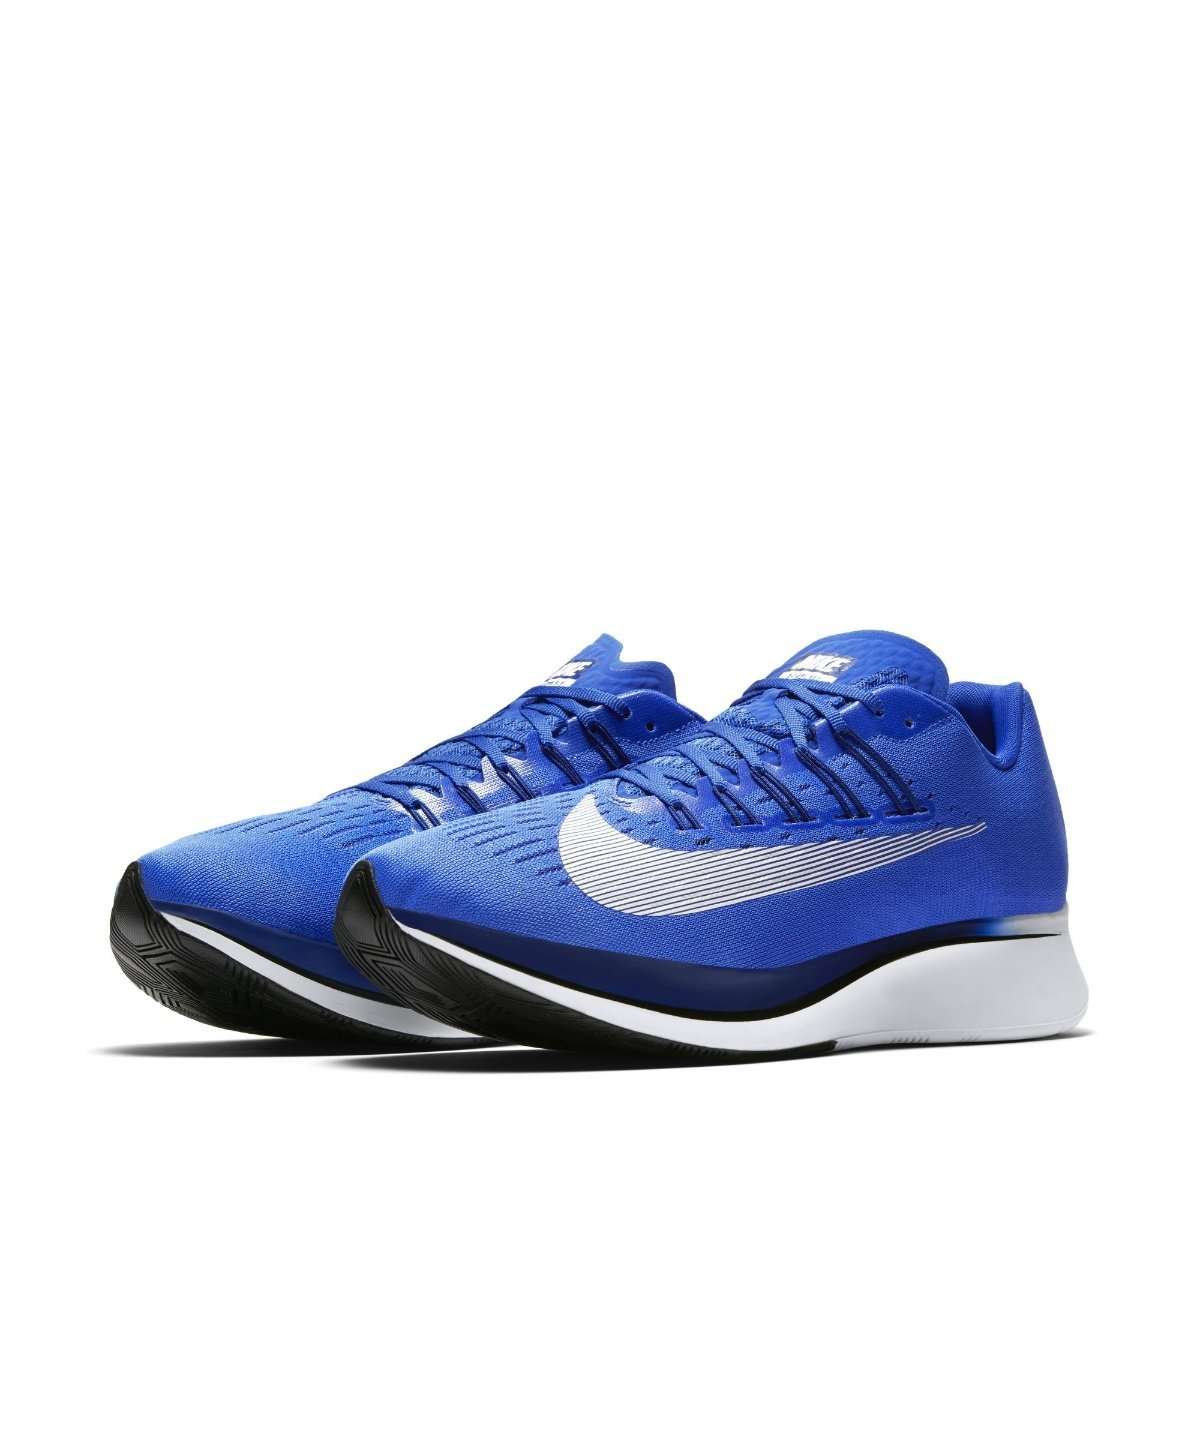 c5b7bc9f4126 Galleon - NIKE Zoom Fly Mens 880848-411 Size 7.5